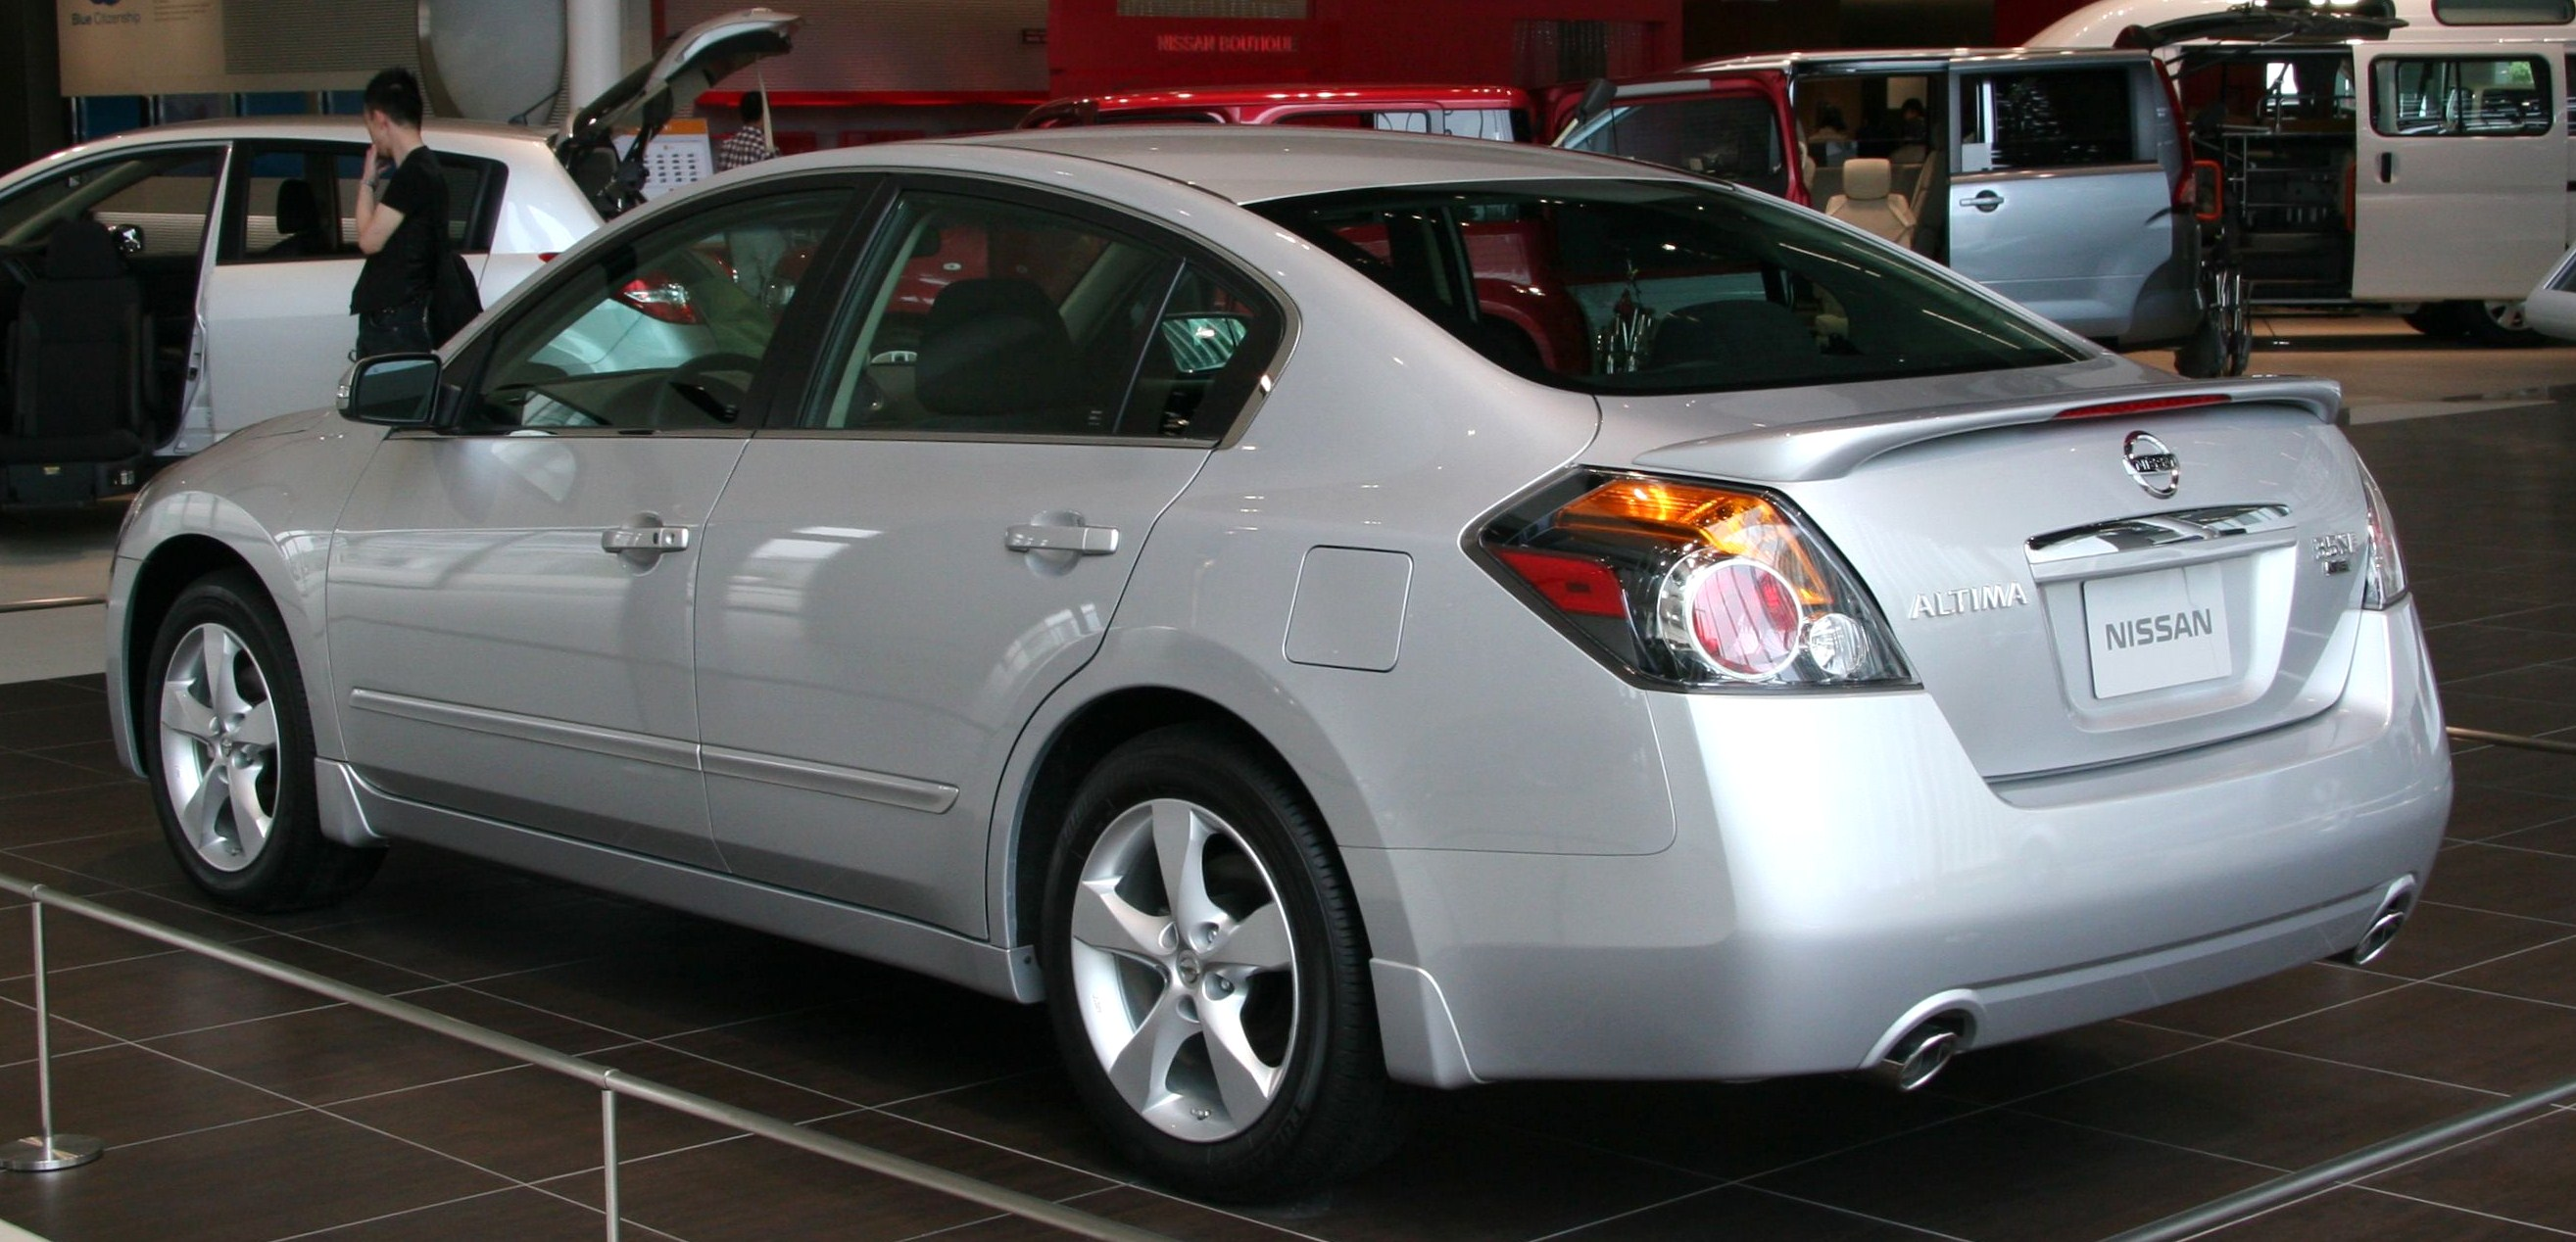 Superb File:NISSAN ALTIMA 3.5 SE Rear